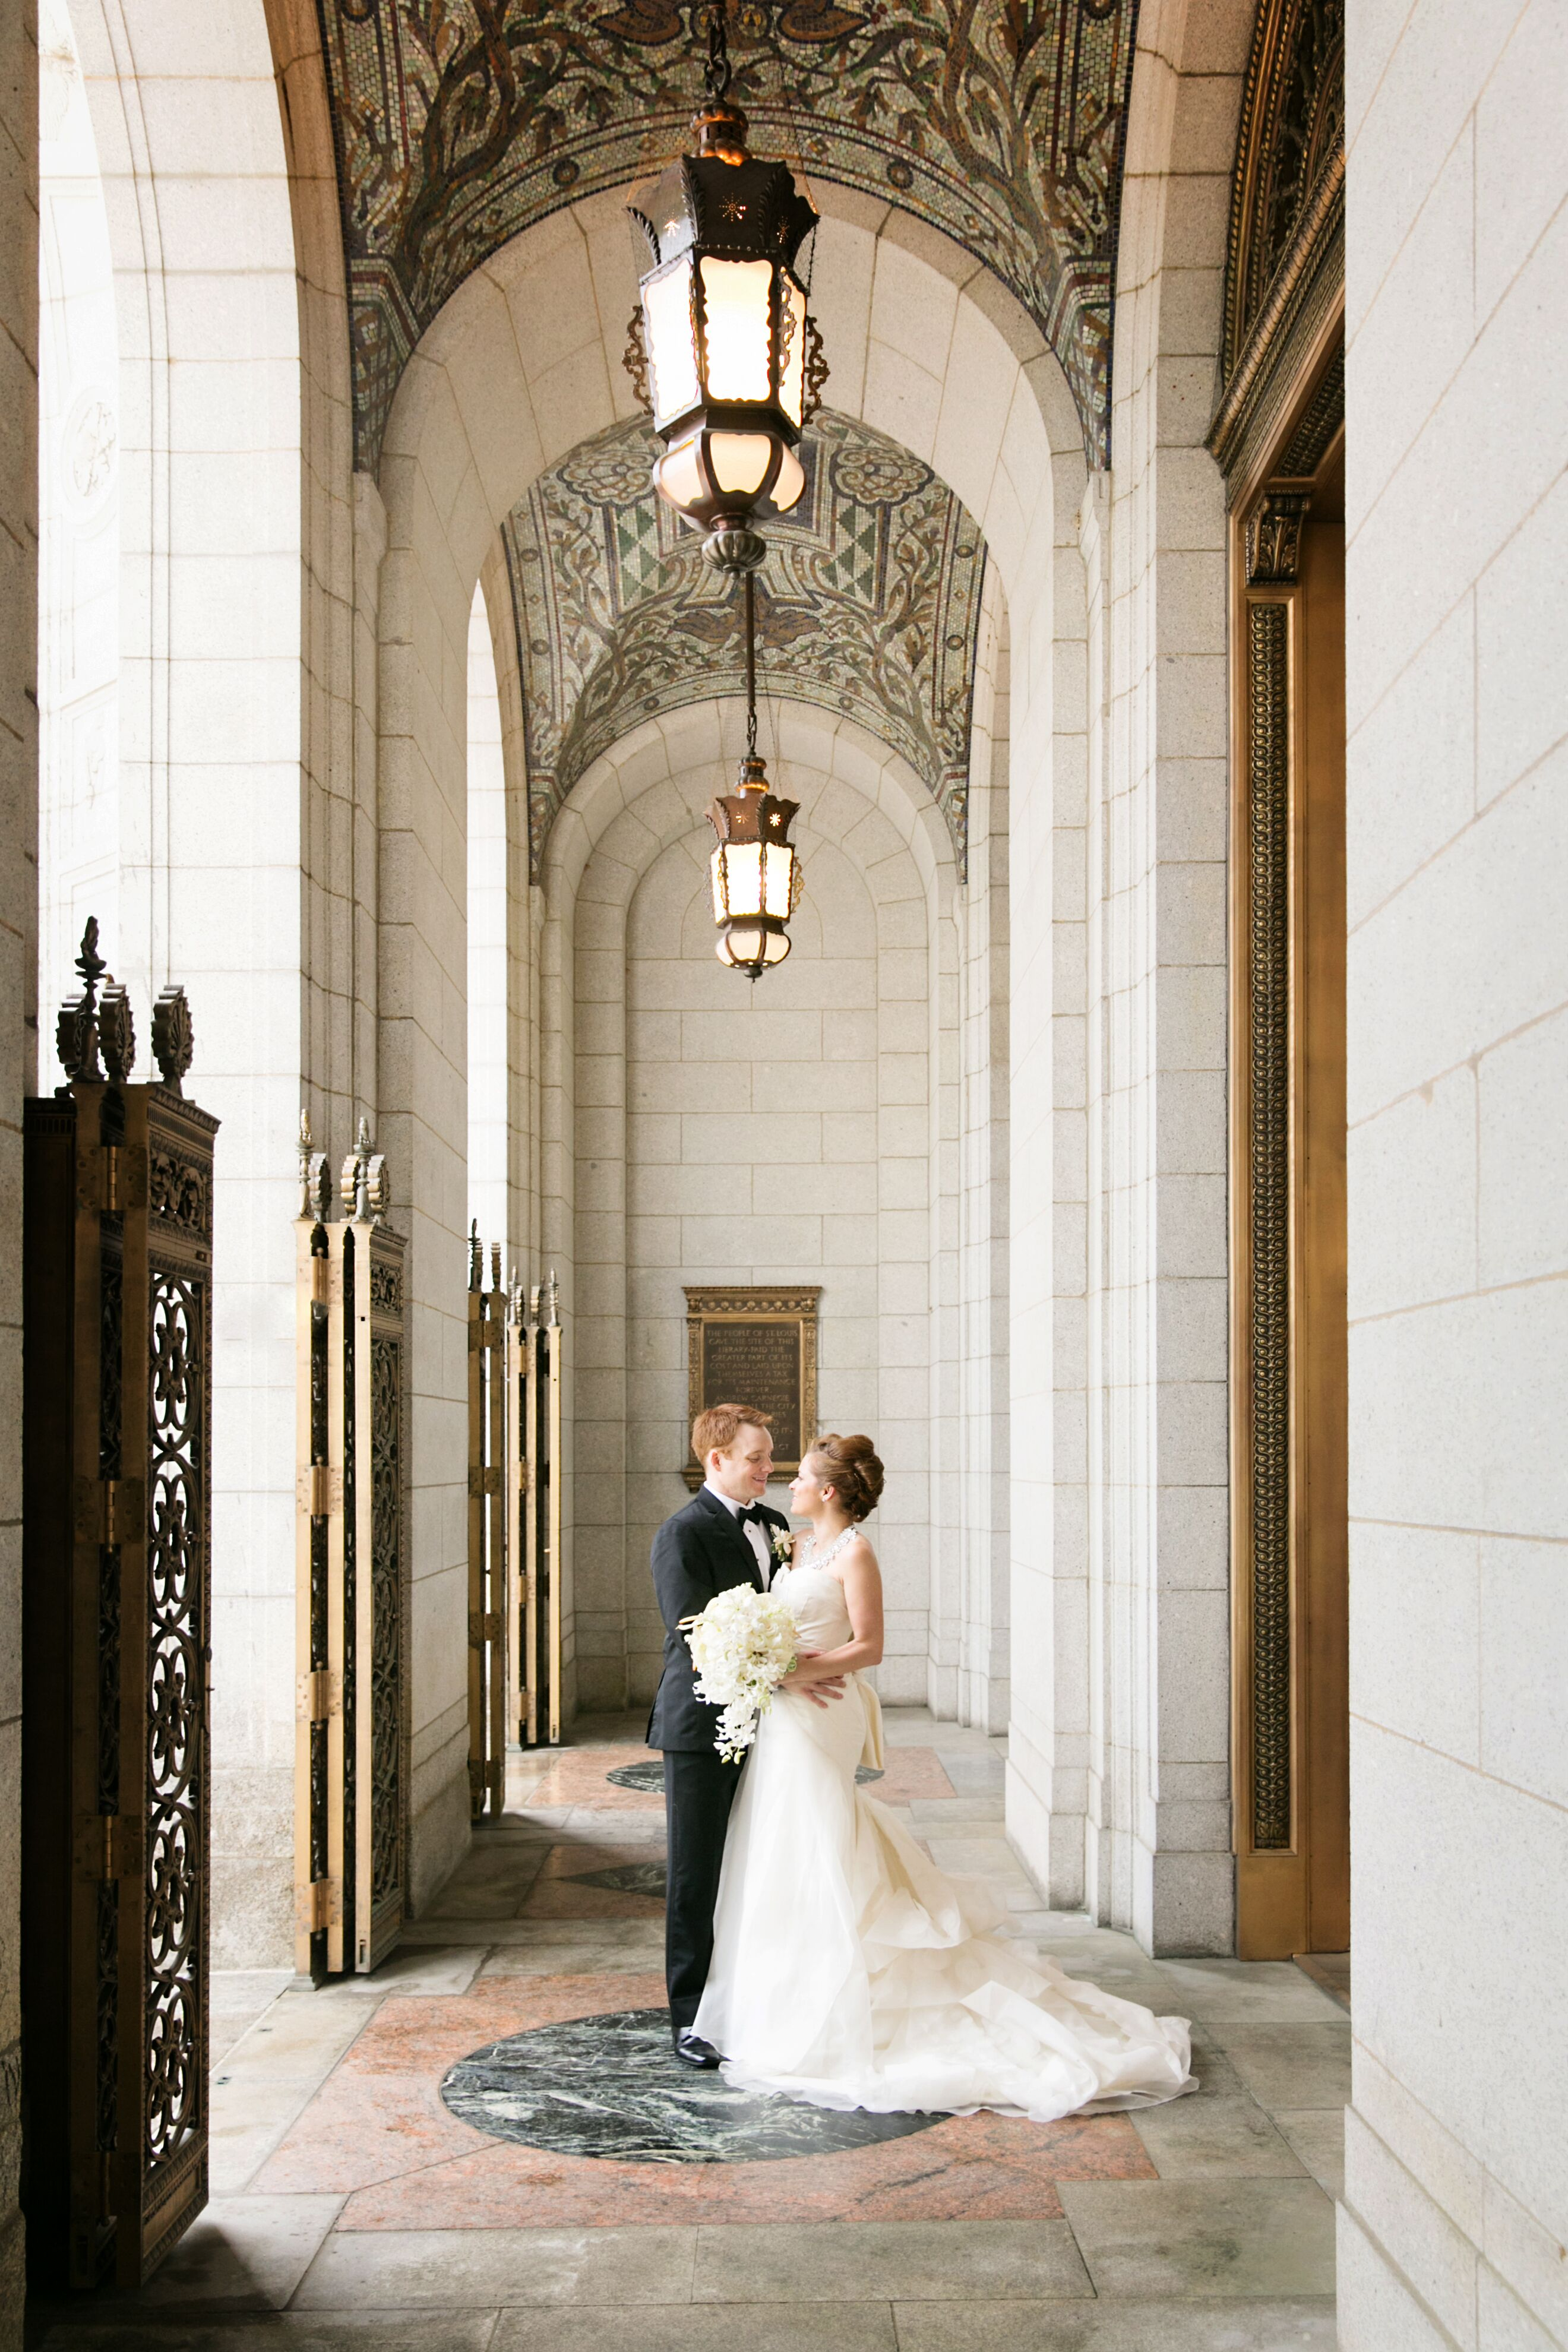 A Formal Art Deco Wedding At The Peabody Opera House In St